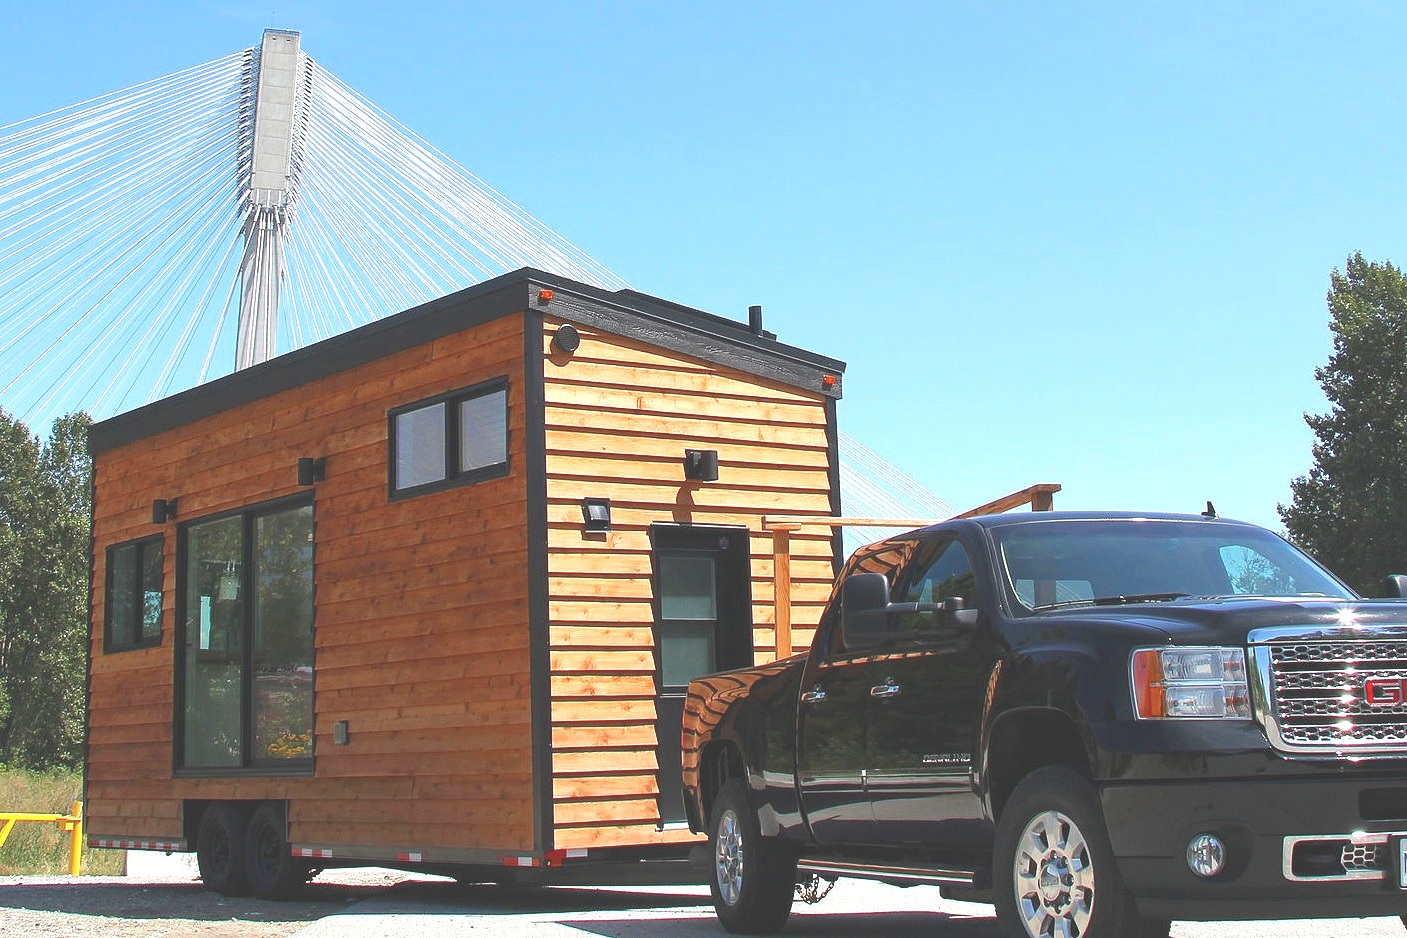 Sonora Tiny House in Vancouver, British Columbia.